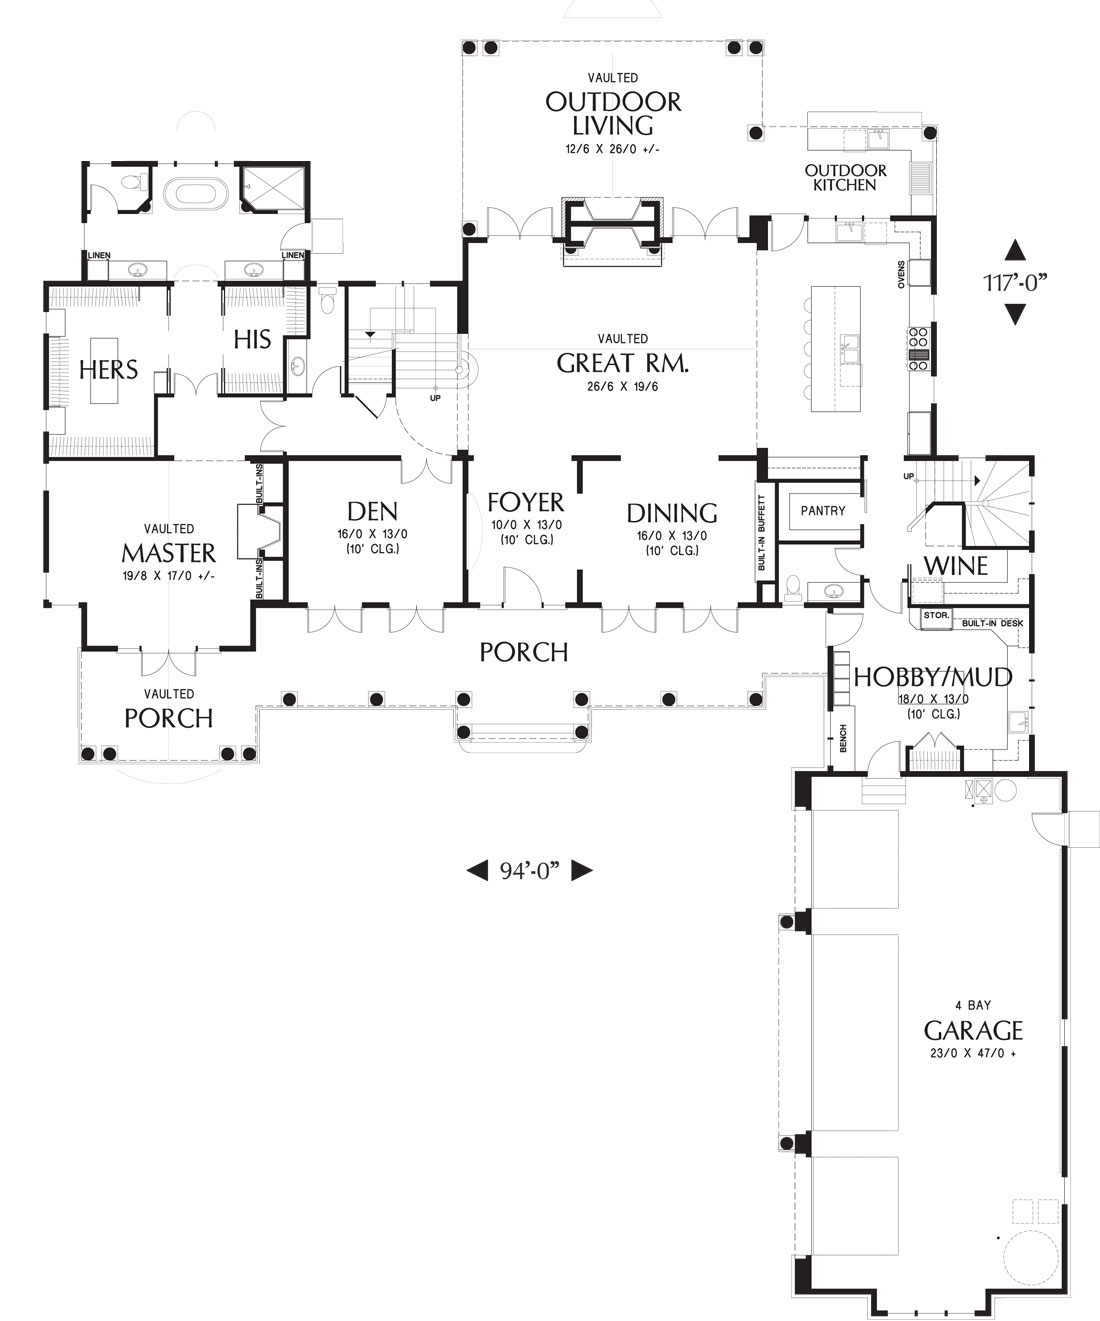 Main level floor plan of a two-story-bedroom Dennis home with a bay garage, hobby/mudroom, wine cellar, formal dining room, den, primary suite, and great room with double doors leading out to the outdoor living.